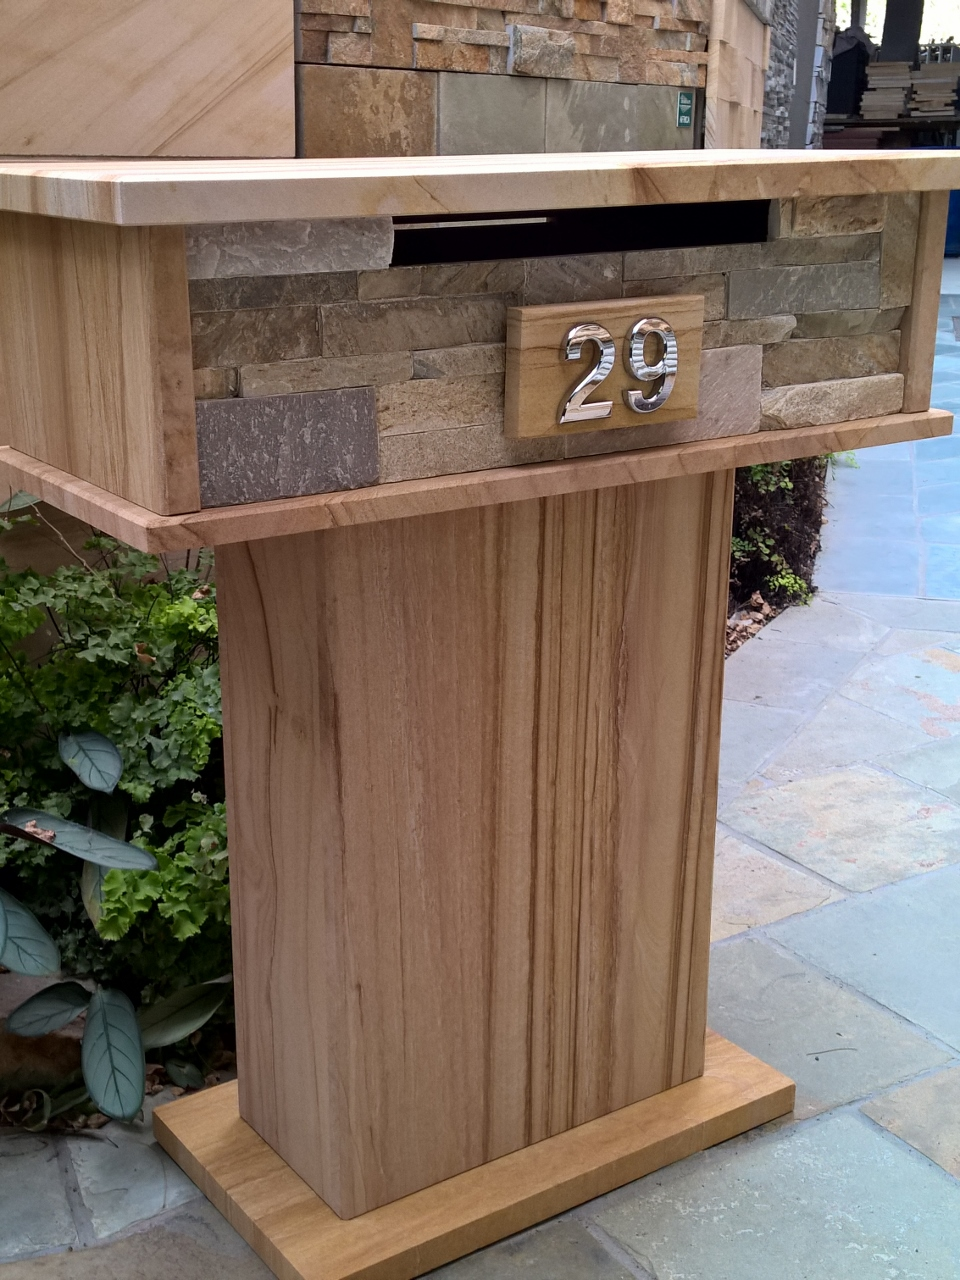 55. Extra wide sandstone letterbox with stackerstone front opening is wide enough to fit A4 magazines. Fitted with aluminium lock 2 key. Size 760x340 Hight 870mm $890